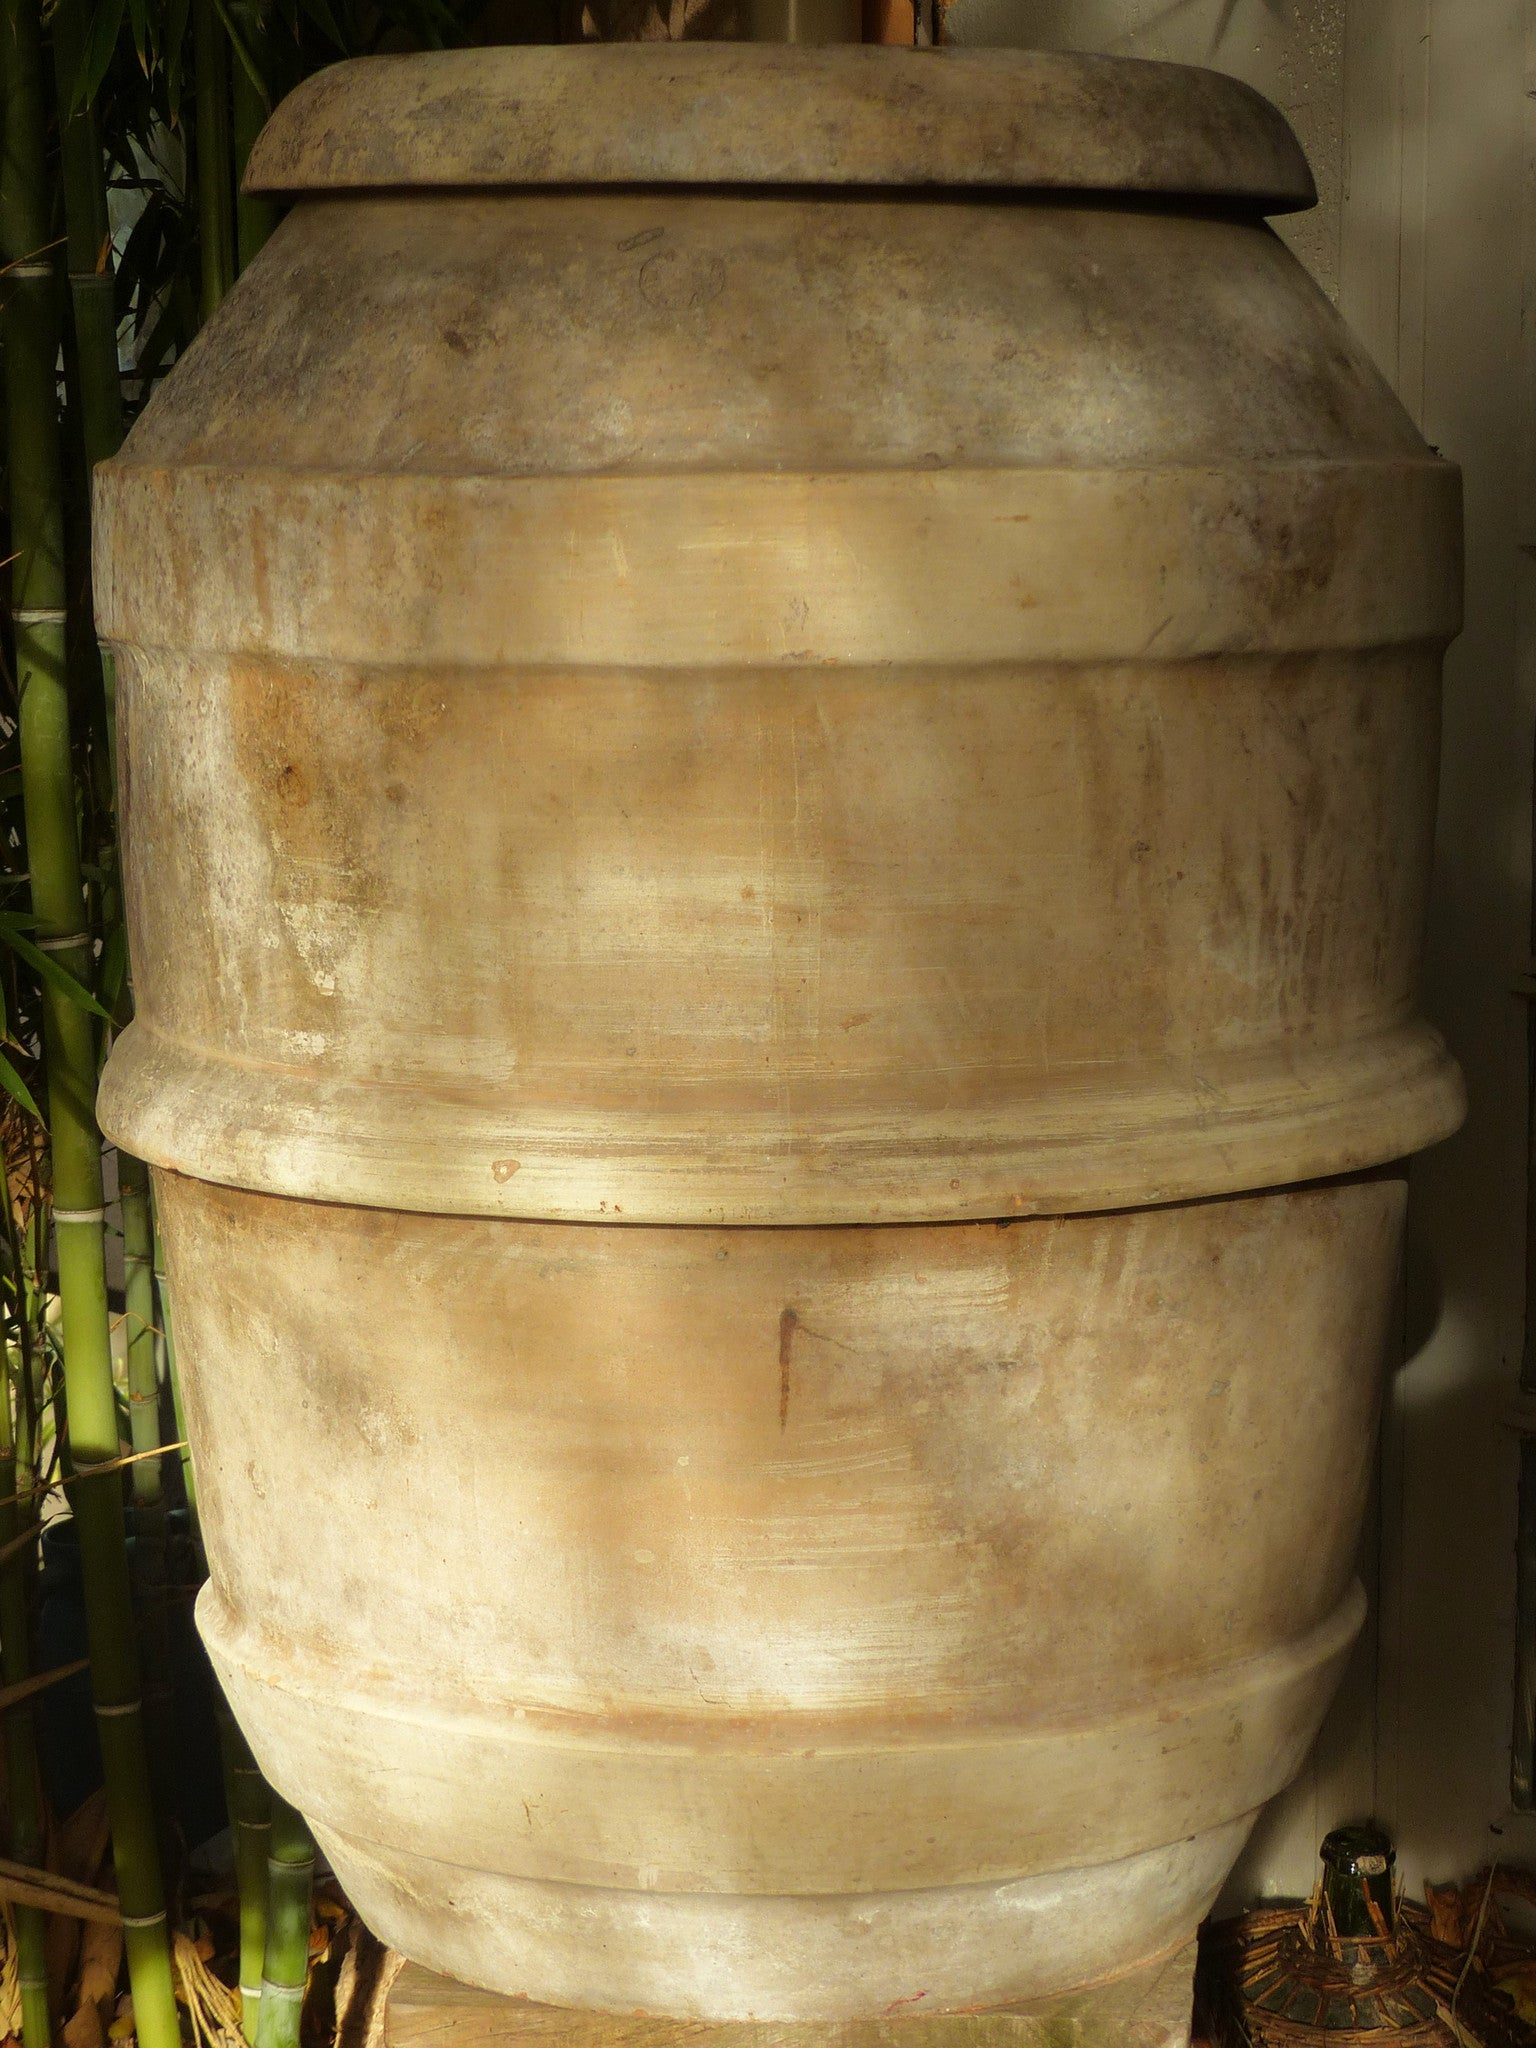 Extra-large Italian terracotta pot